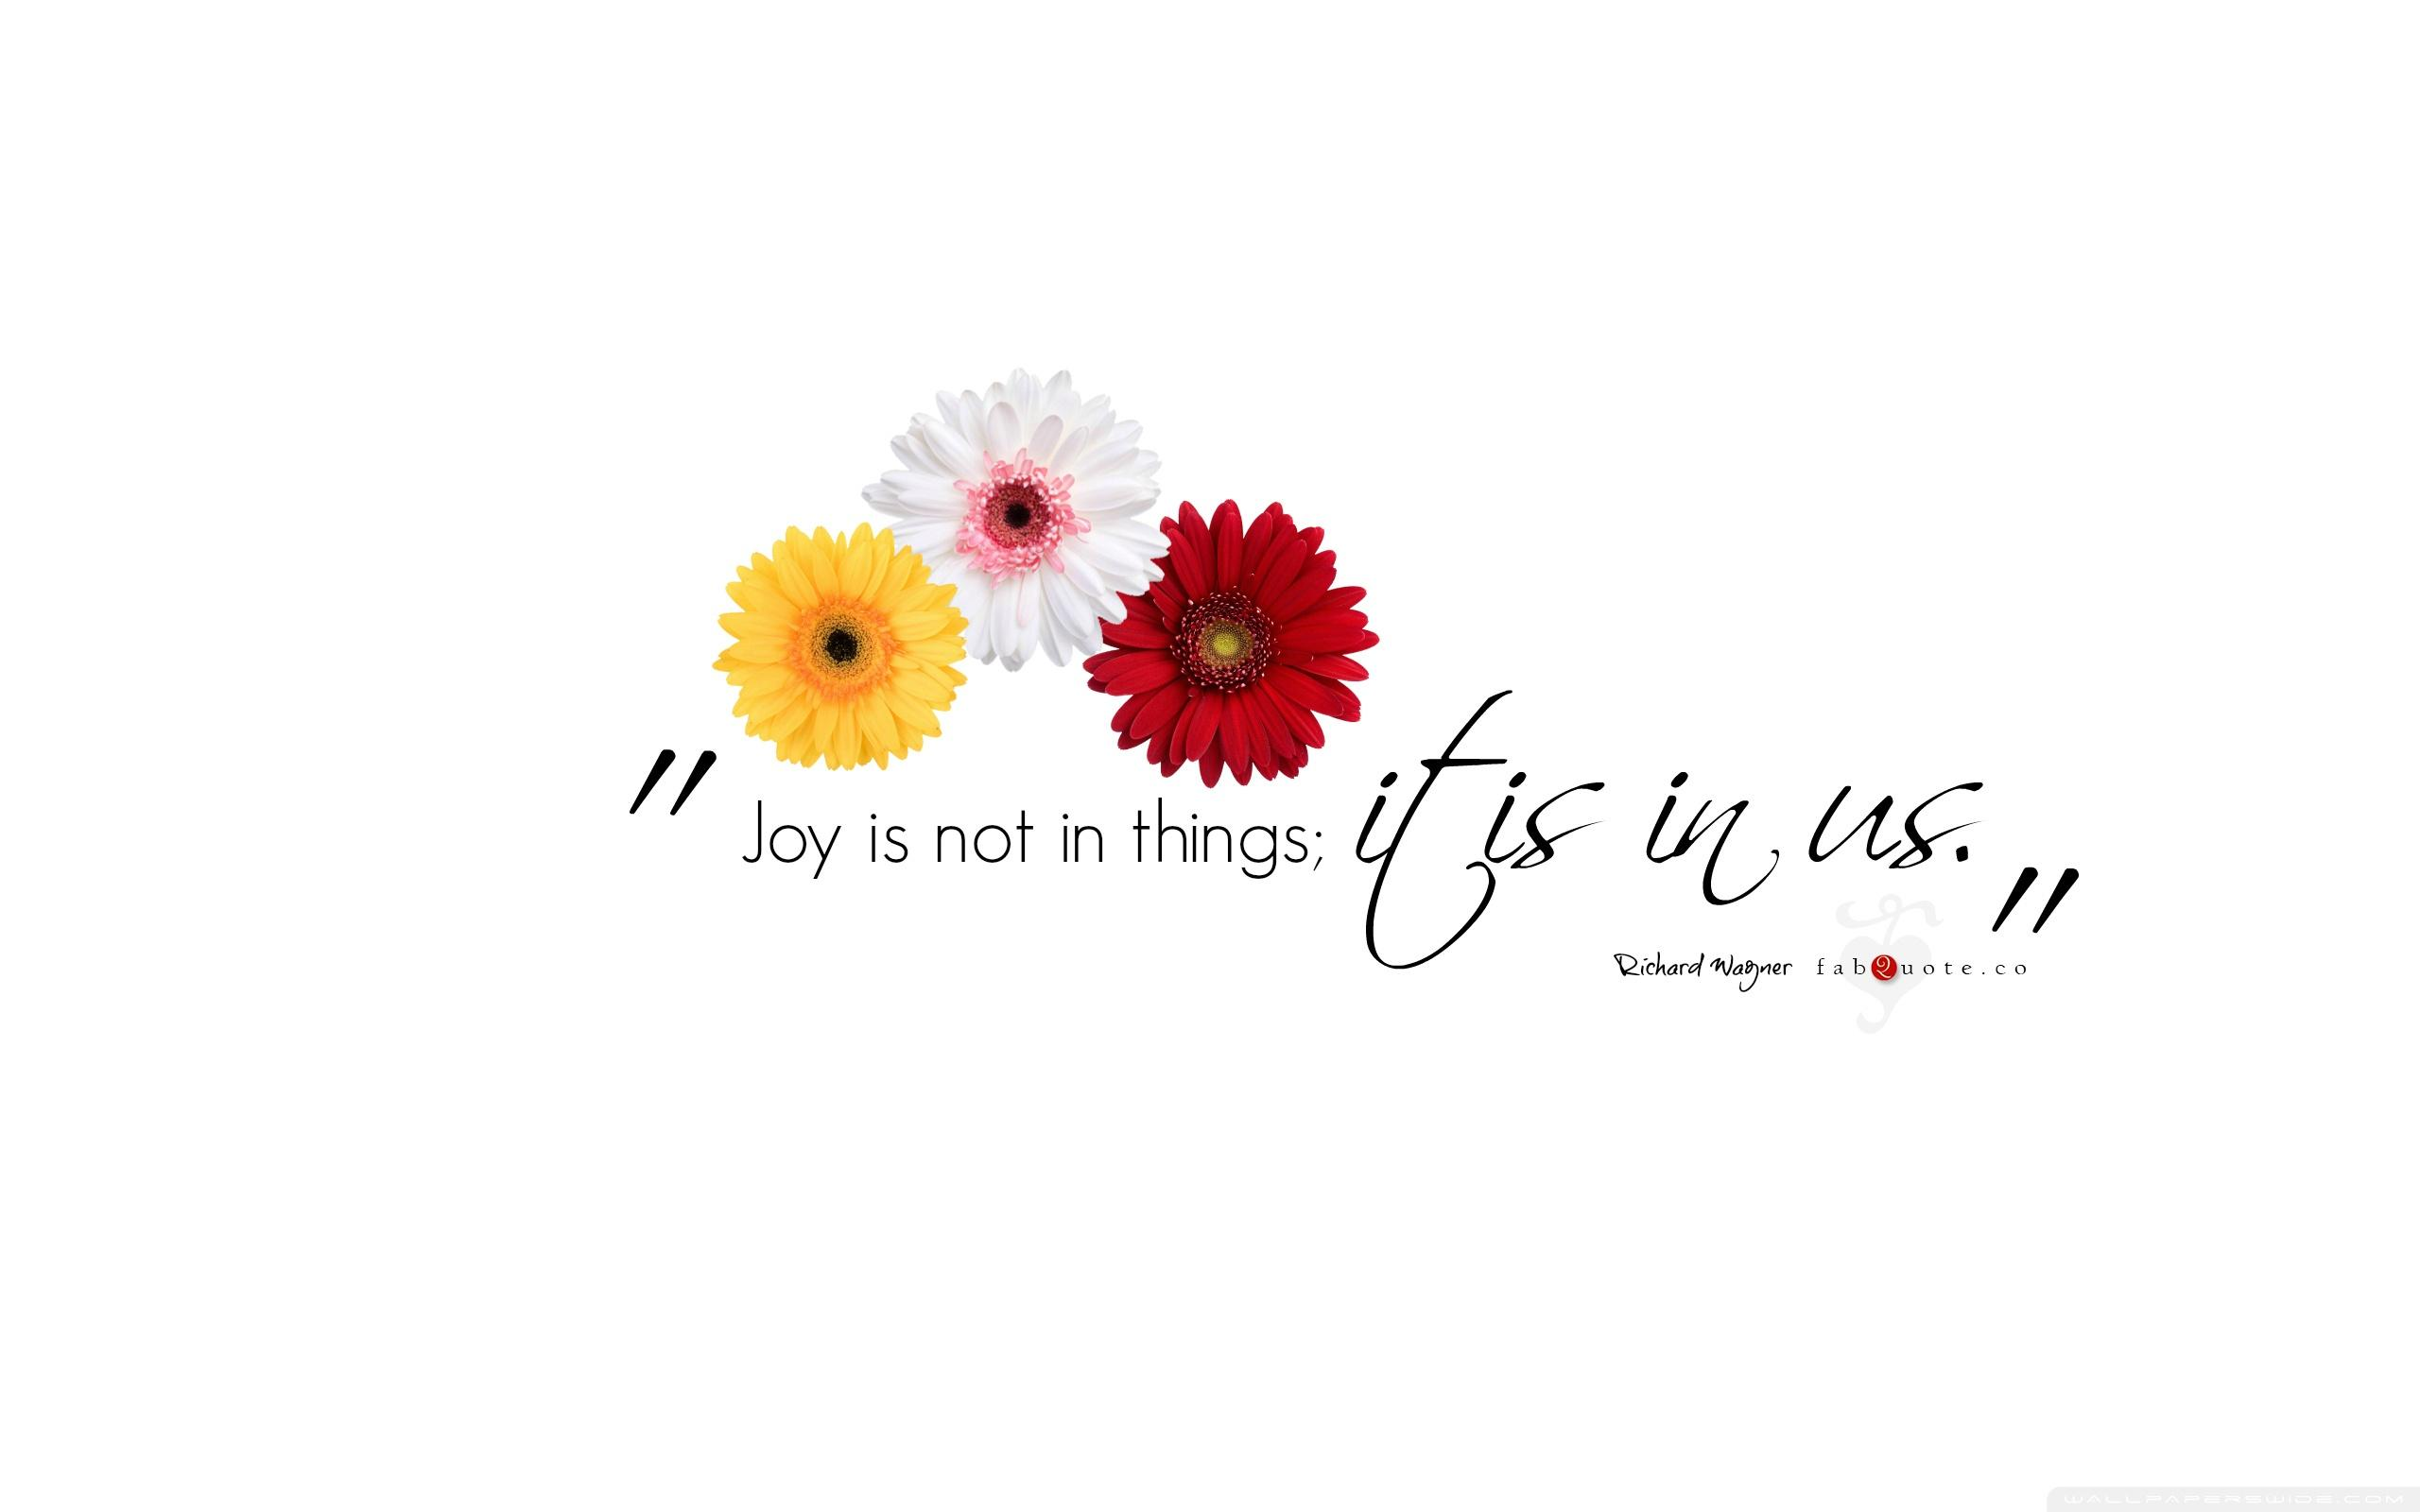 Richard Wagner Quote about Joy ❤ 4K HD Desktop Wallpapers for 4K